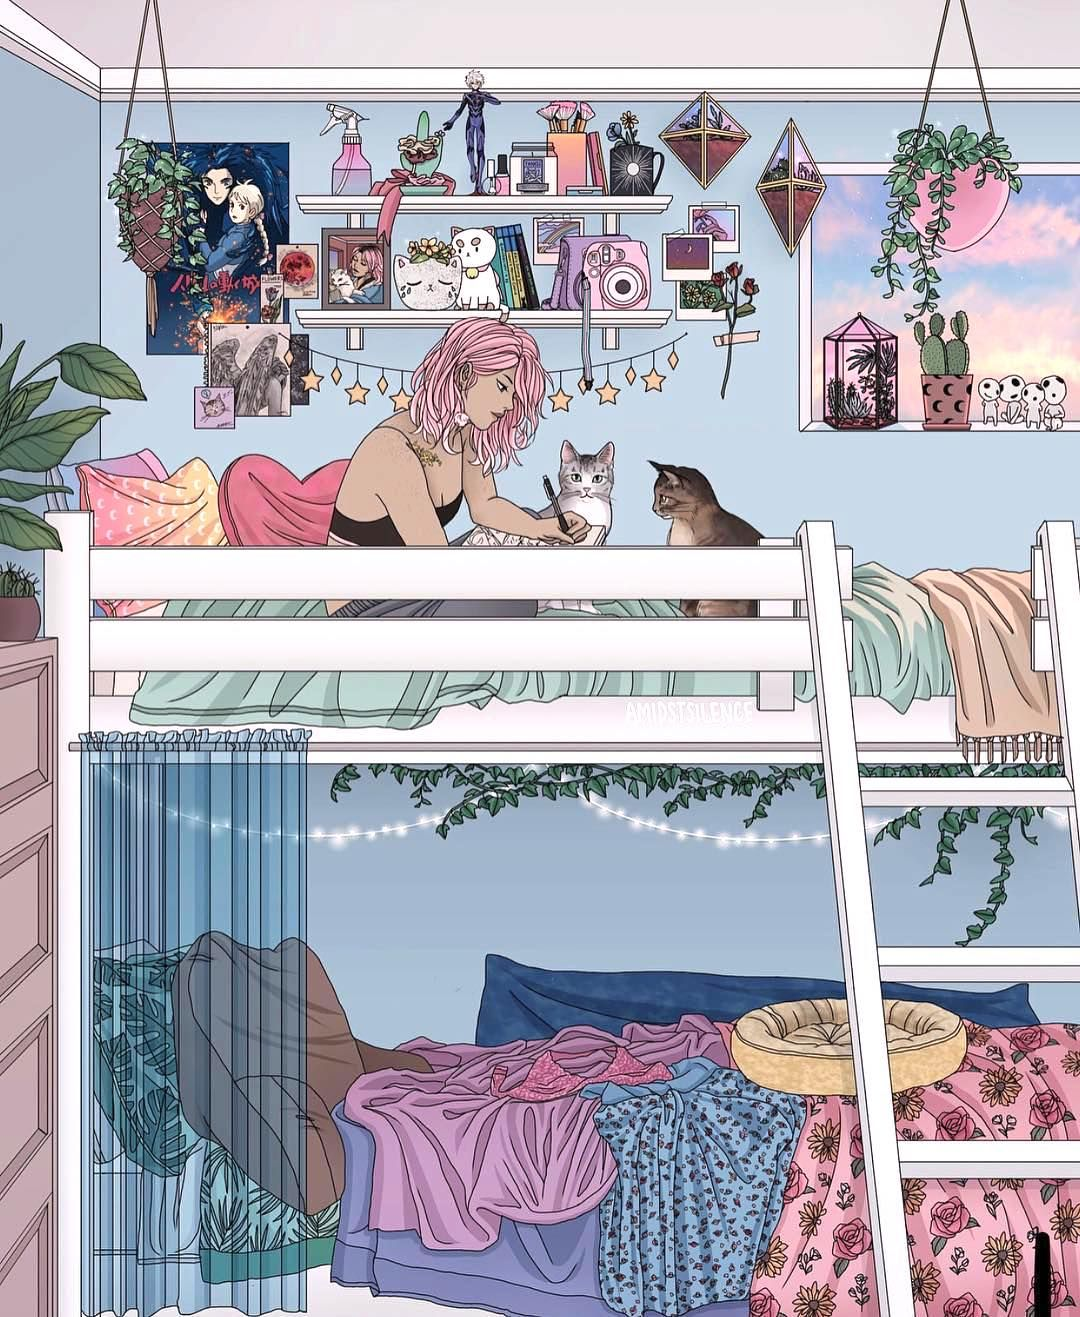 In her cozy place cute pastel color illustration pop